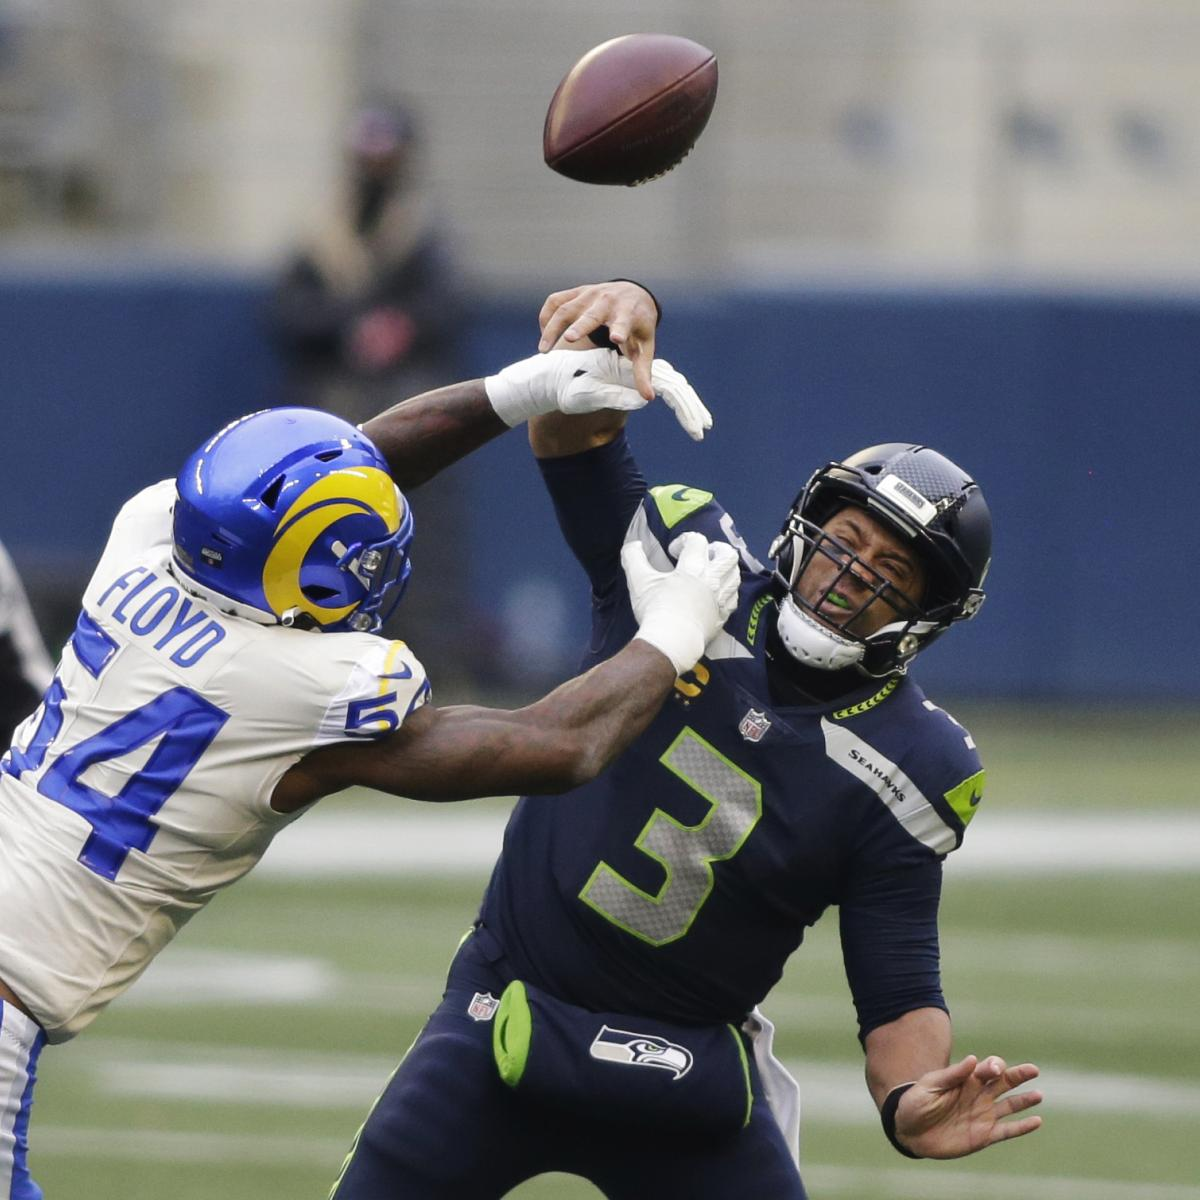 Seahawks' Russell Wilson Confirms He's 'Frustrated with Getting Hit Too Much' thumbnail